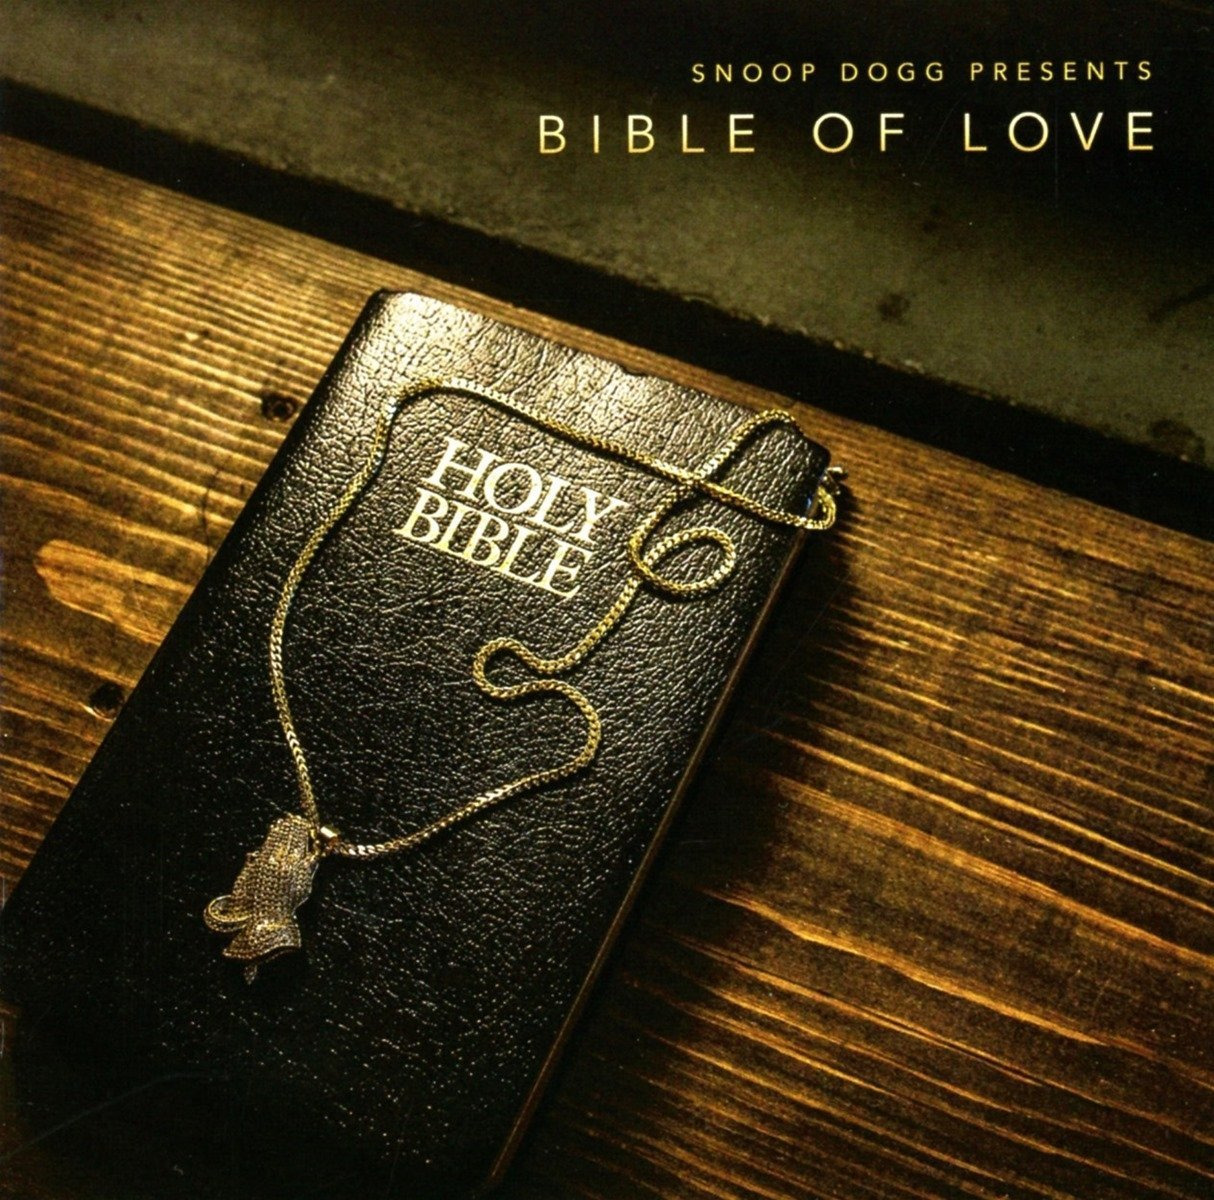 Snoop Dogg, Snoop Dogg Presents Bible of Love